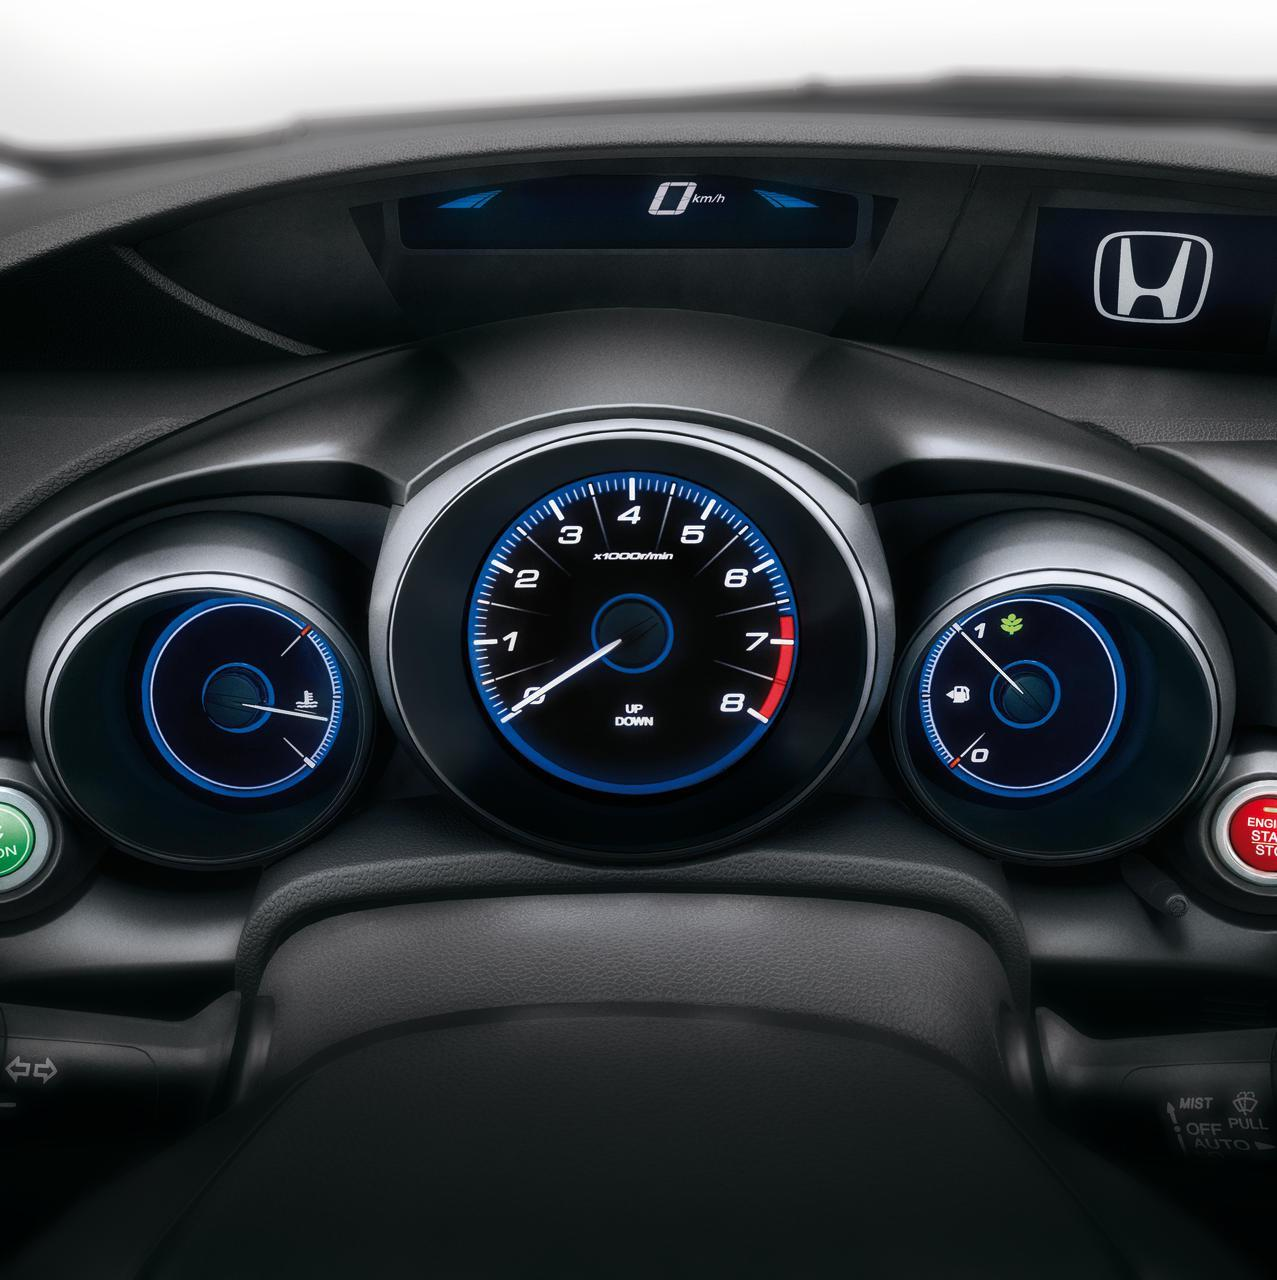 Foto de Honda Civic 2012 (72/153)